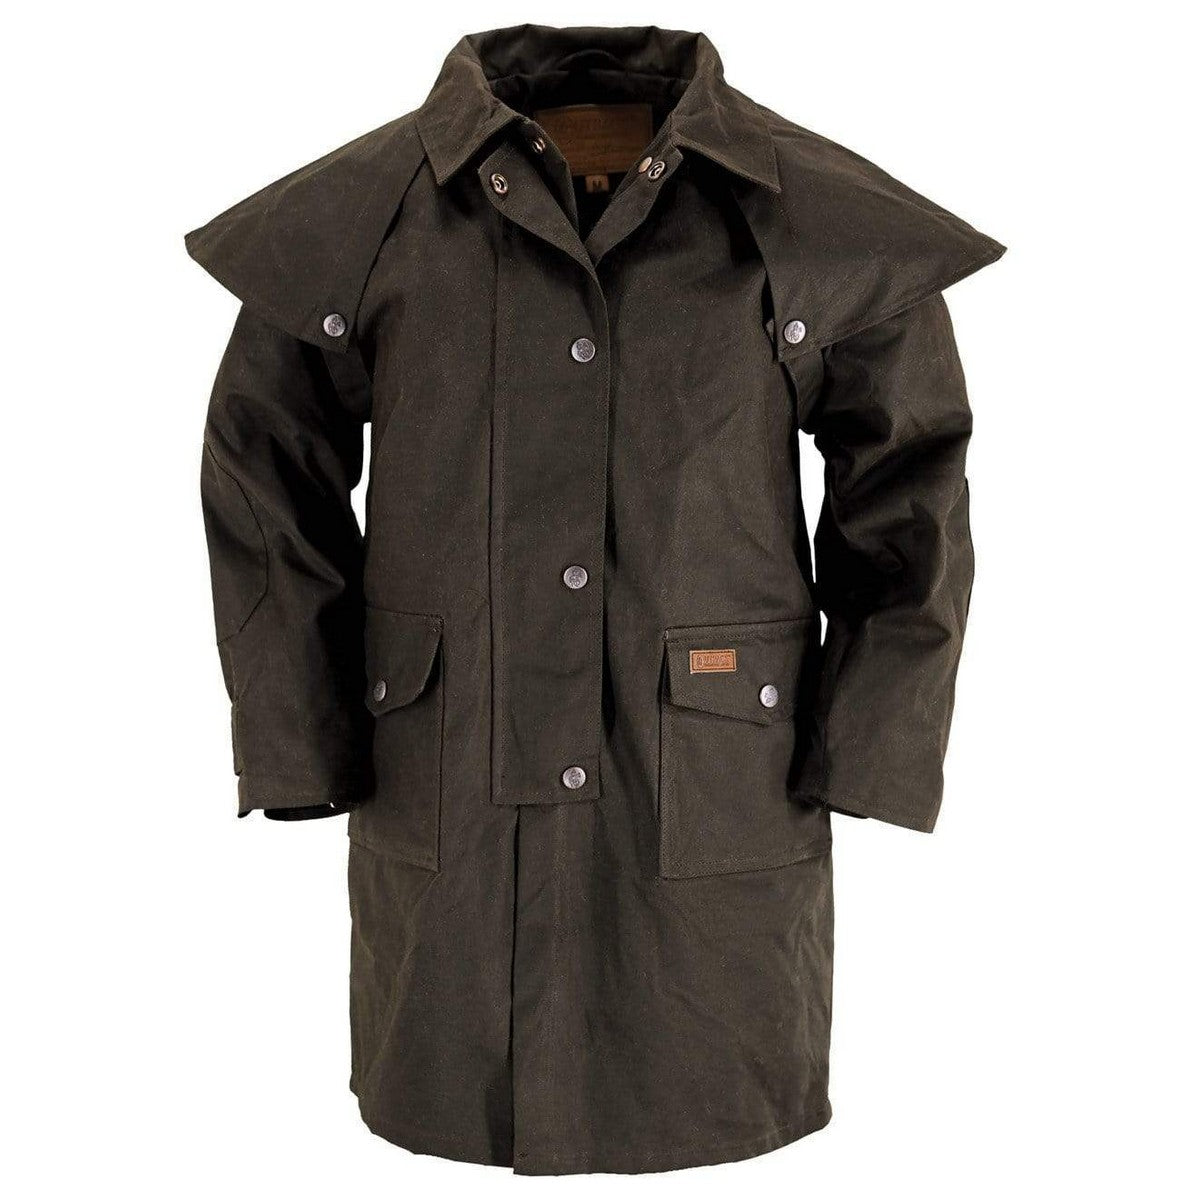 Image of Outback Kids Oilskin Duster